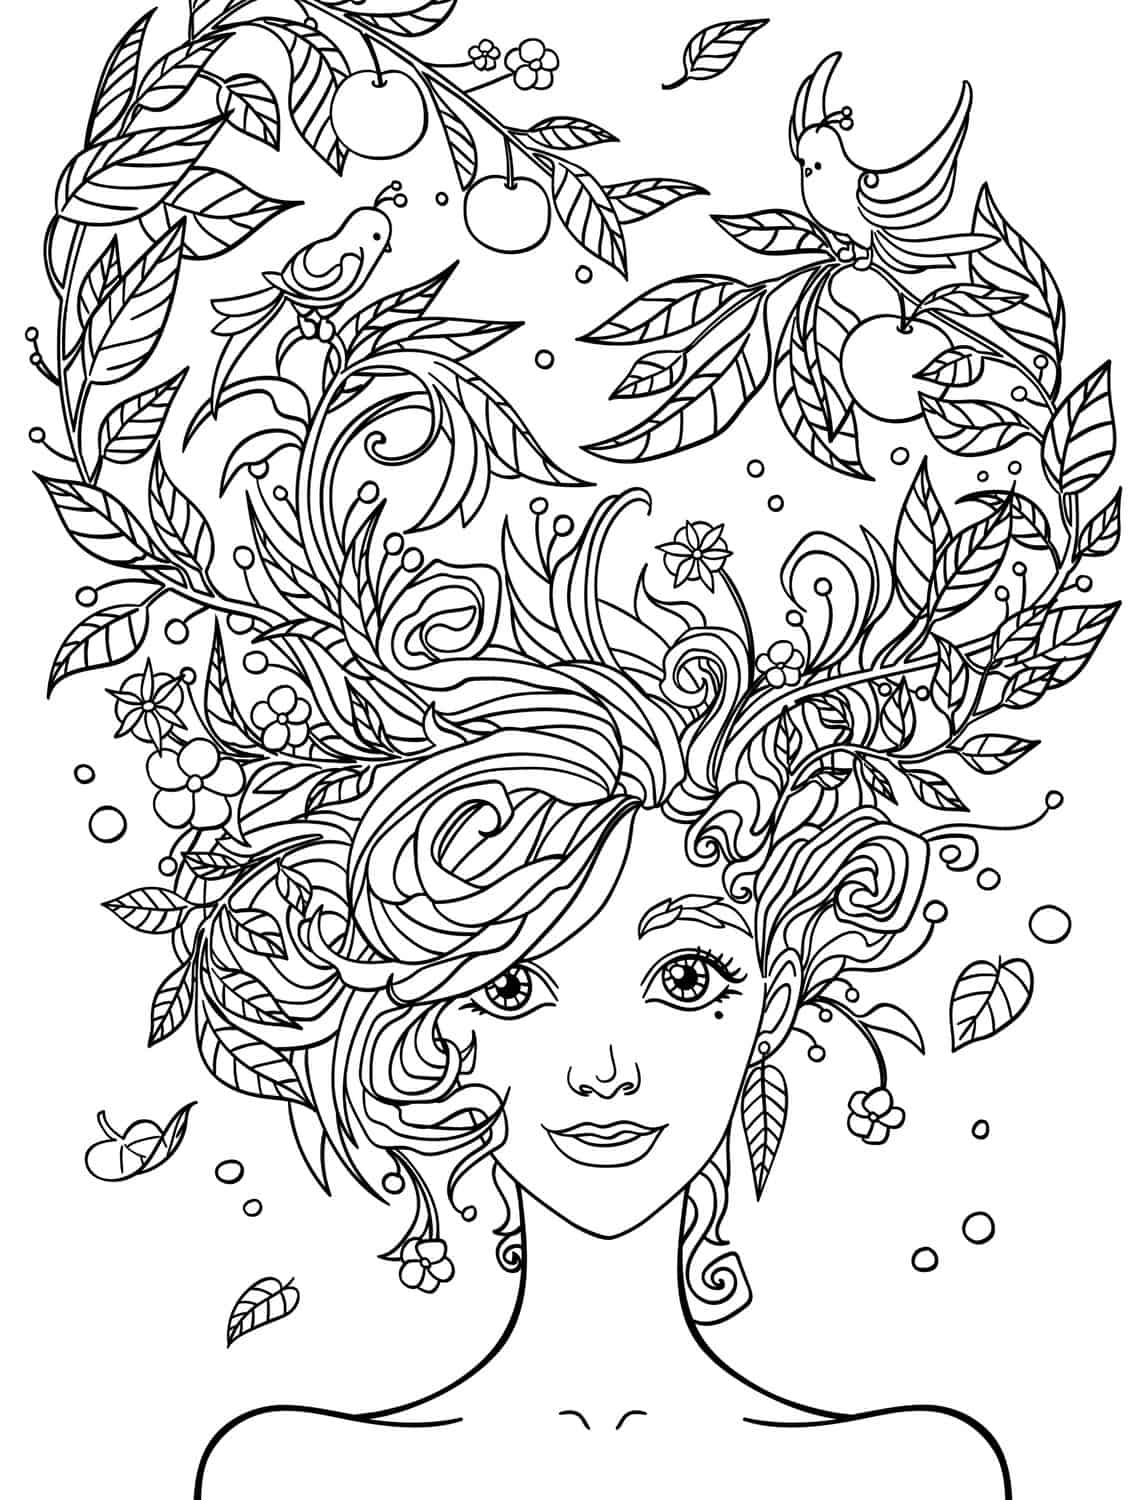 coloring pages for adults pinterest - 10 crazy hair adult coloring pages page 5 of 12 nerdy